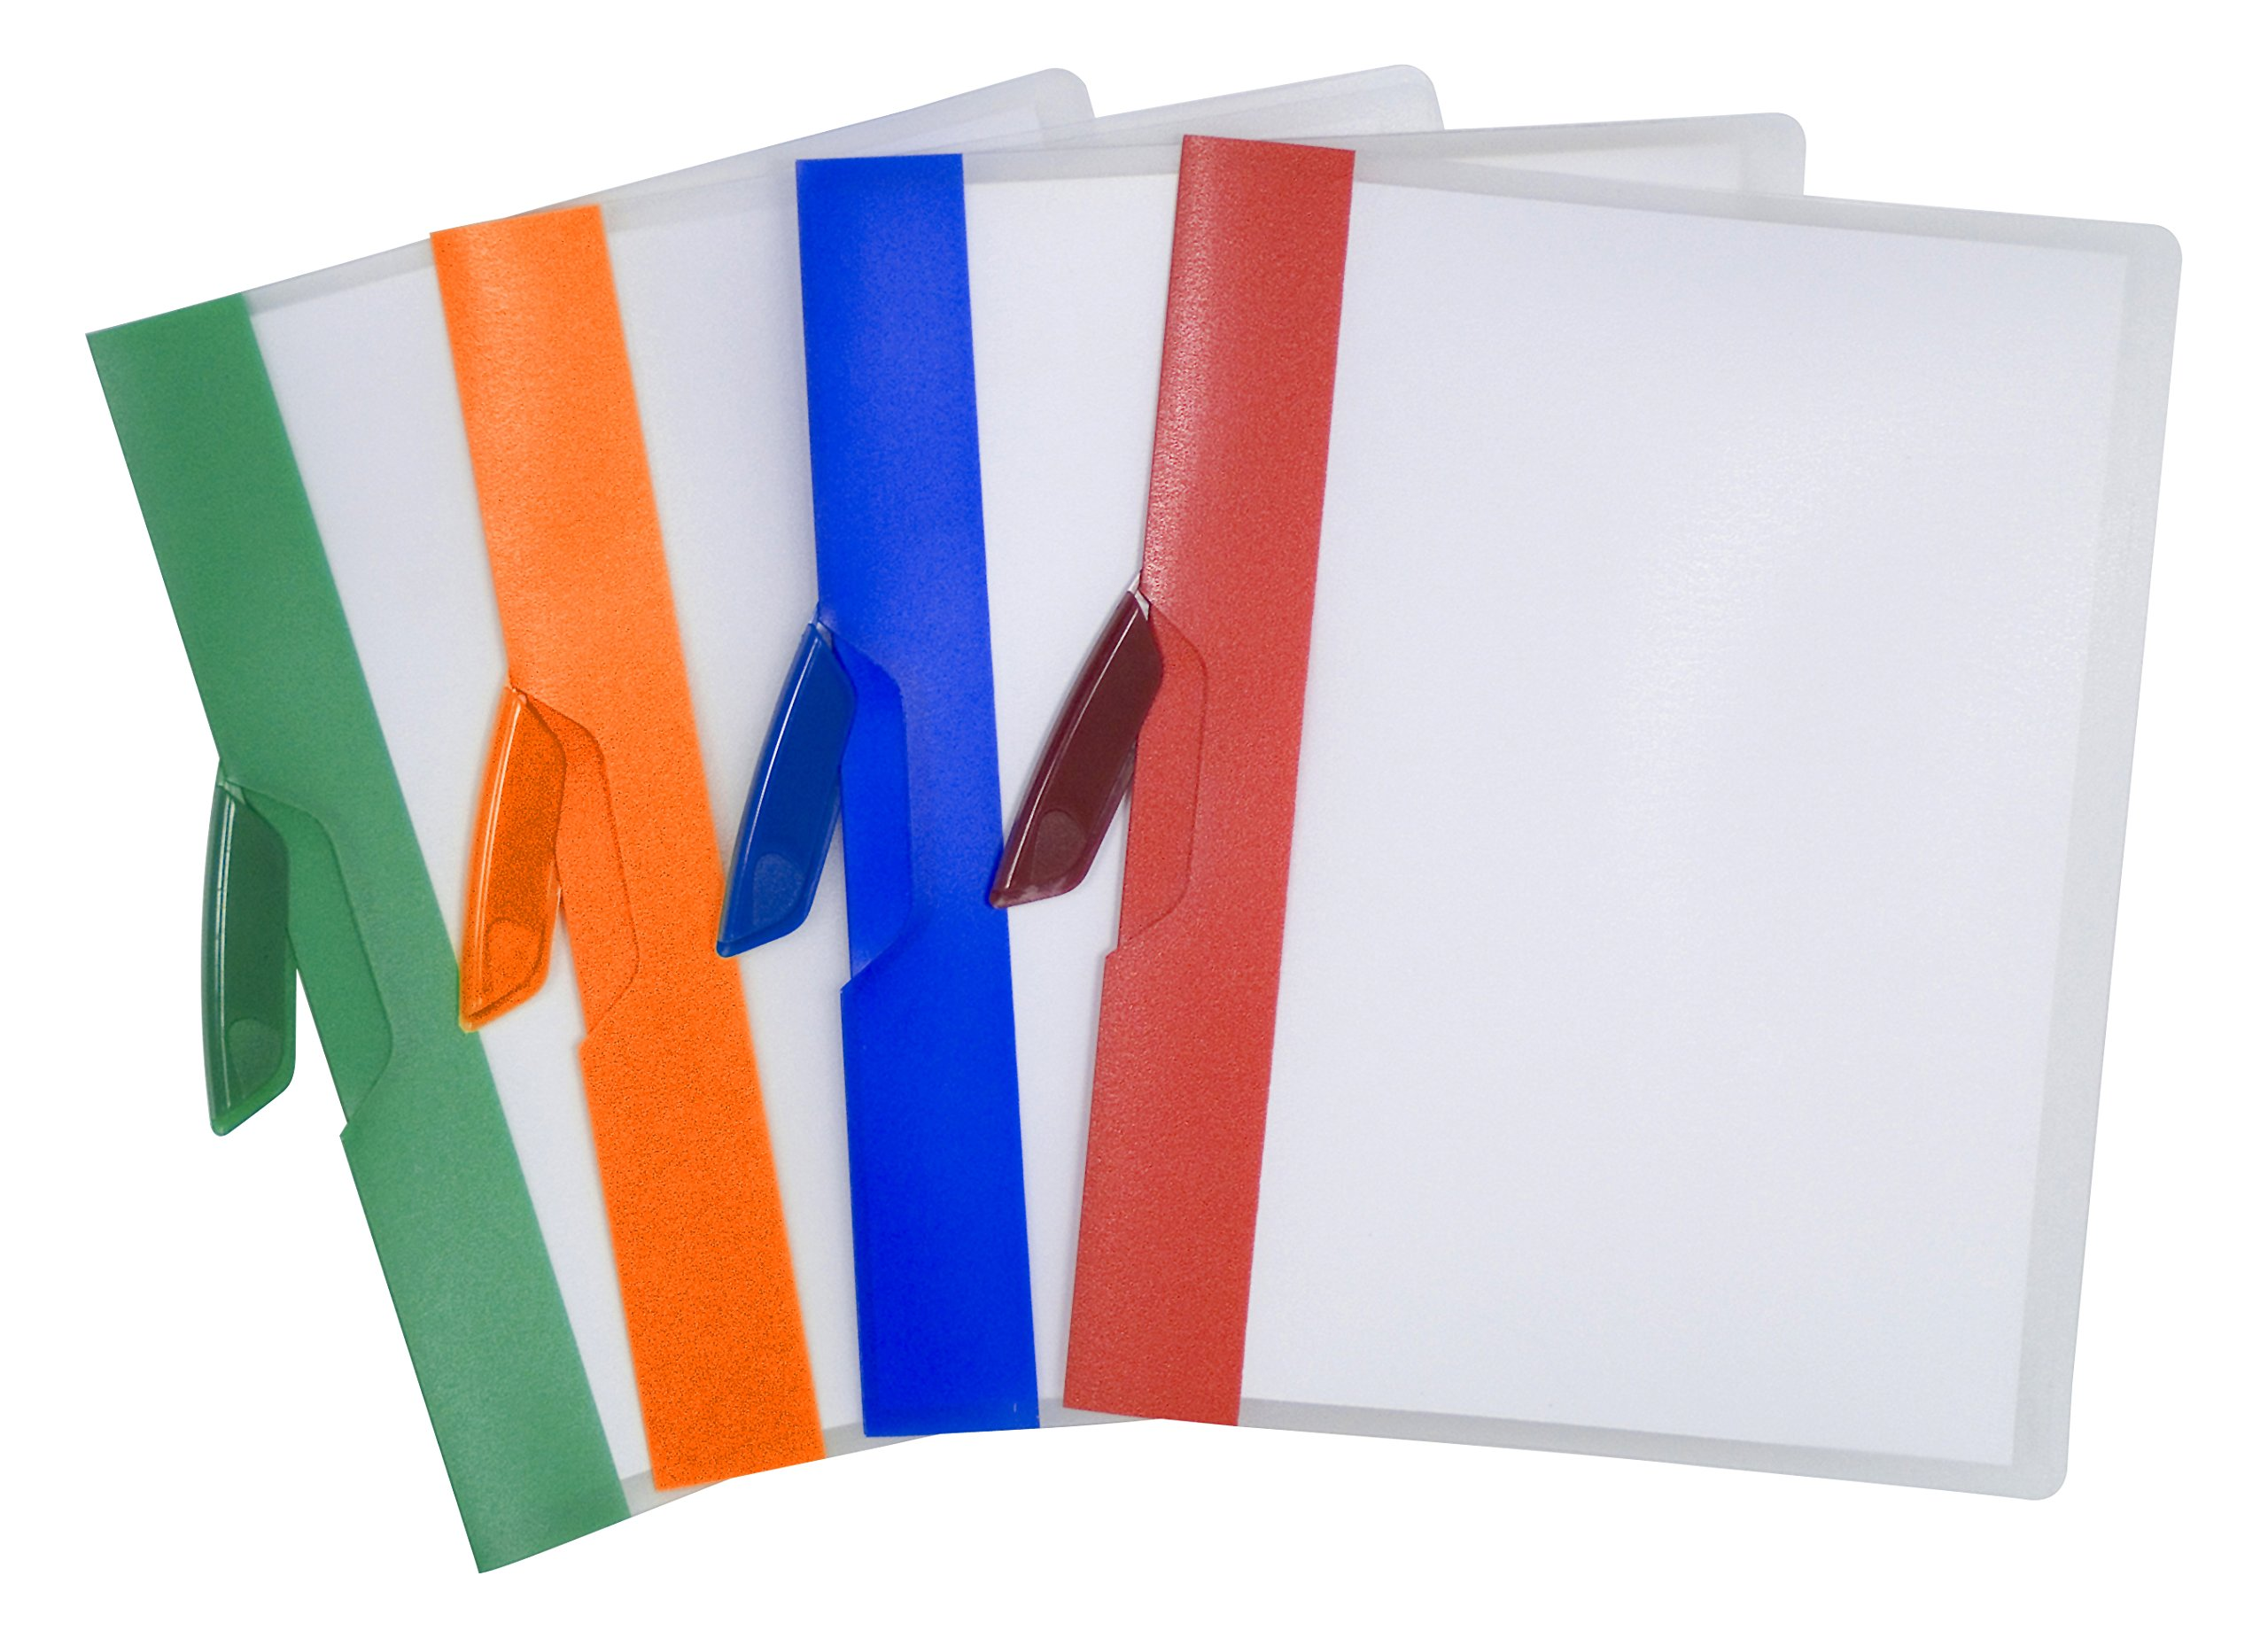 Storex Swing Clip Clear Poly Report Cover, Assorted Color Stripes, Case of 14 (STX51261B14C)